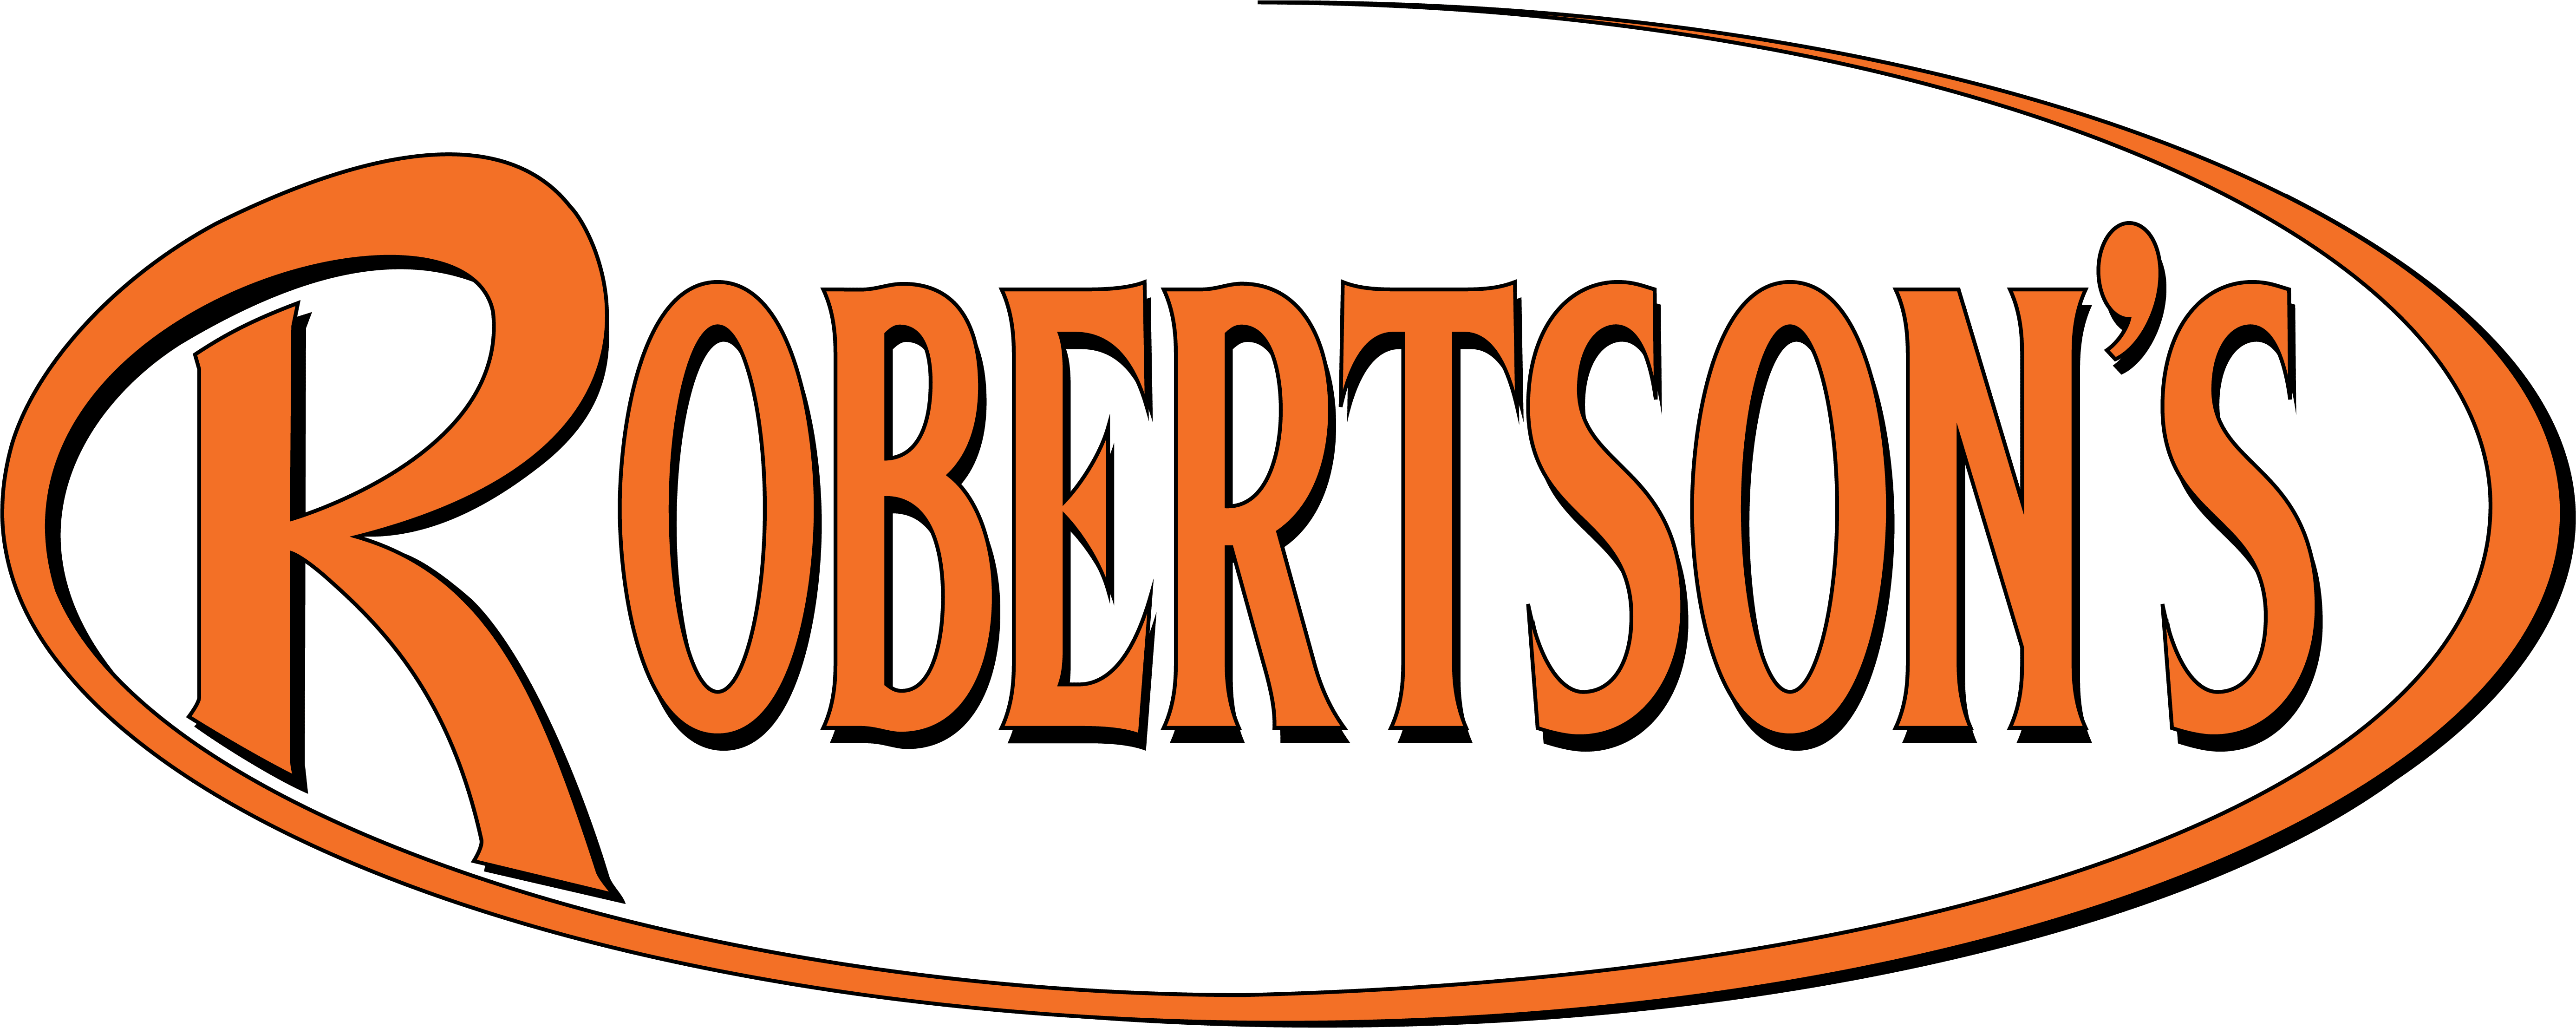 Robertson's Landscaping